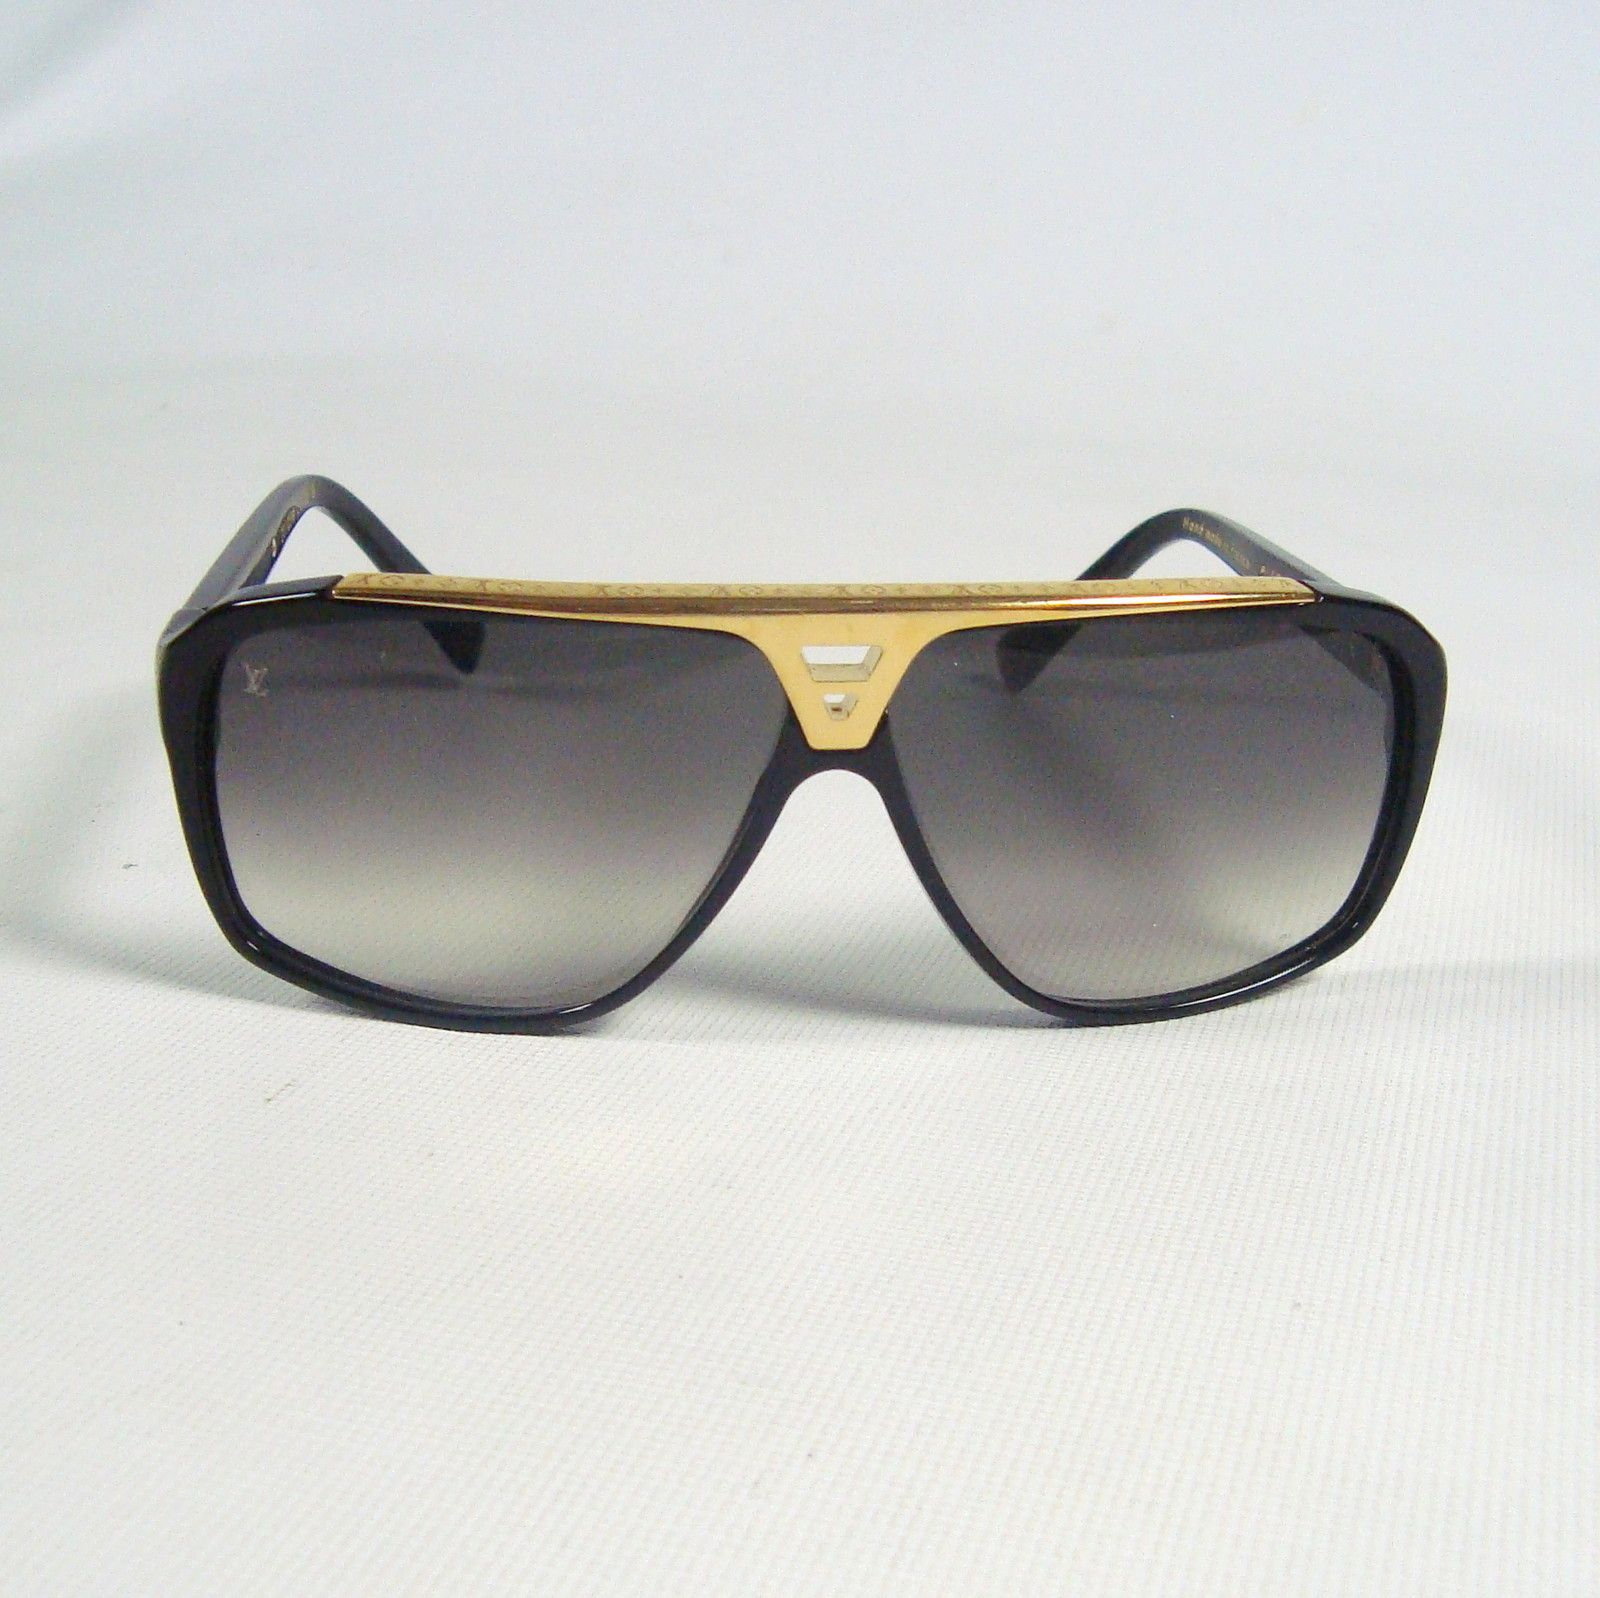 177a21ffeeb6a Louis Vuitton Sunglasses (Men s Pre-owned Black   Gold Aviator Sun Glasses